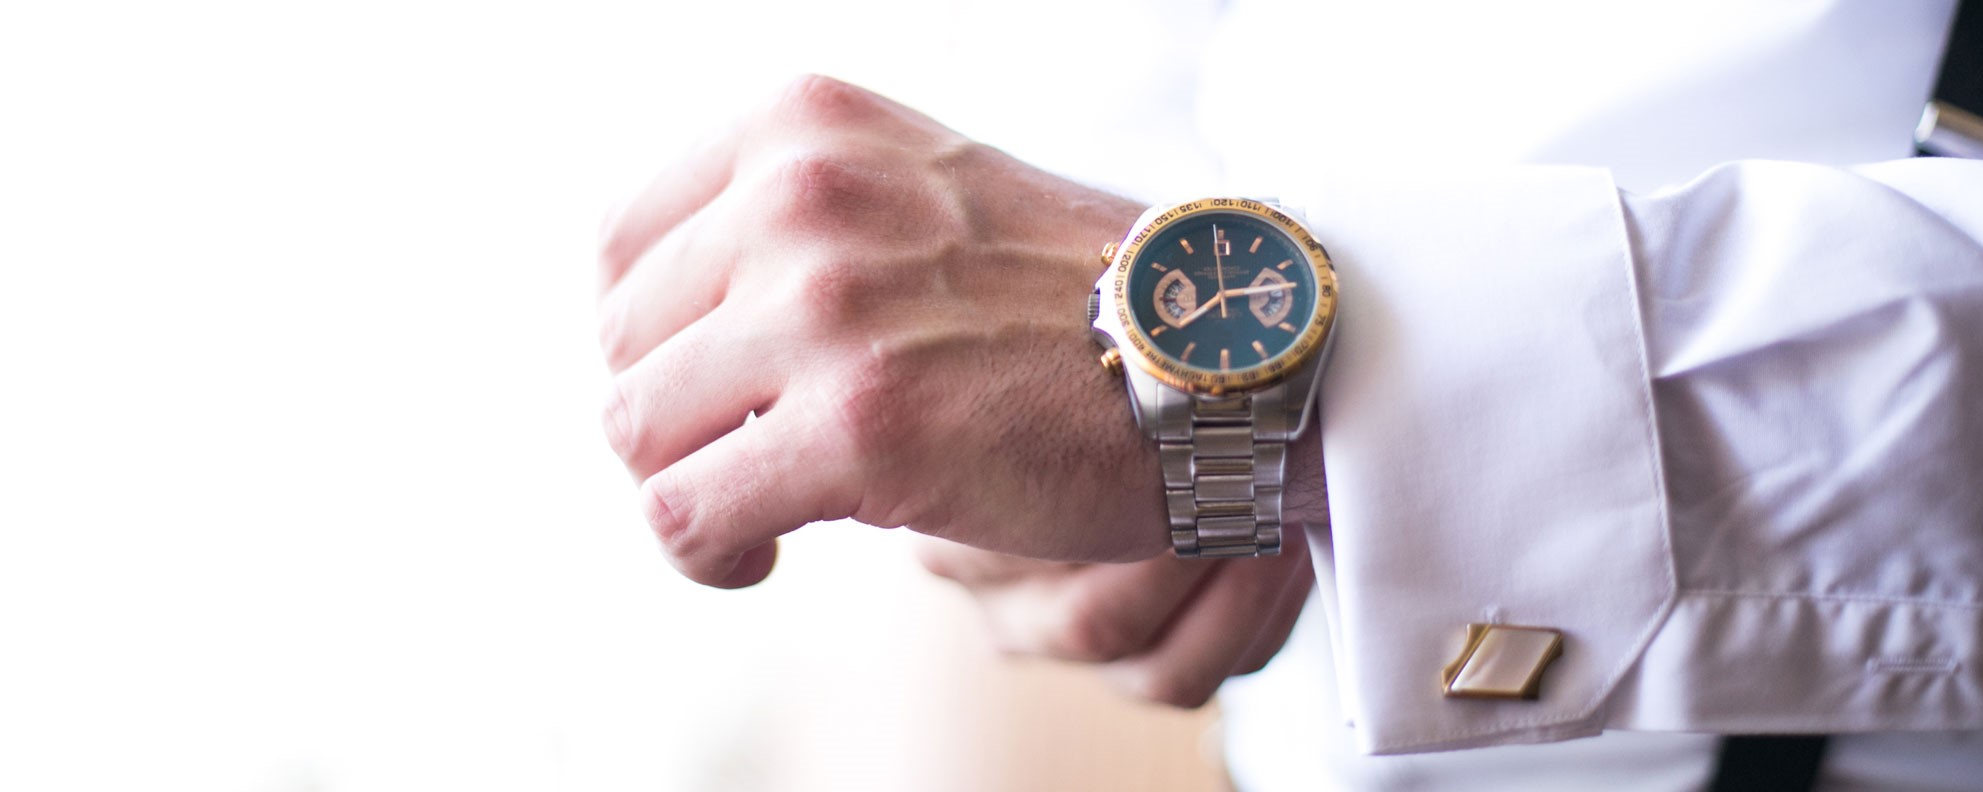 mens watch on sleve with cuff link jewelry